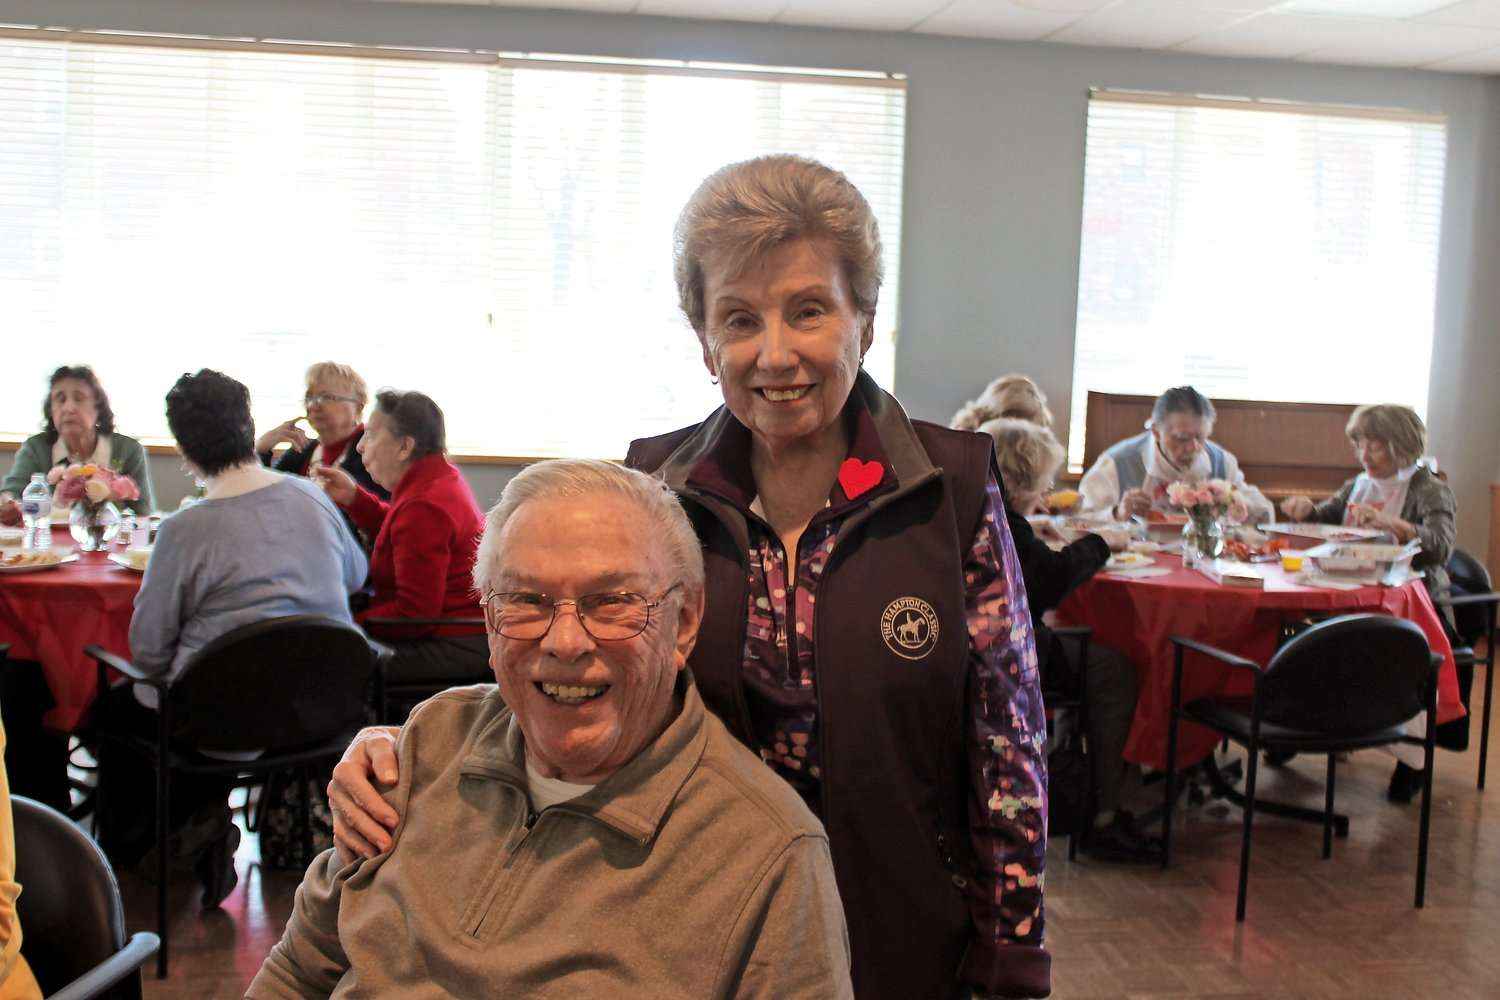 John and Claire Kirkwood celebrated their 63rd wedding anniversary on Feb. 13. The next day, they enjoyed a Valentine's Day lobster lunch at the Sandel Senior Center.